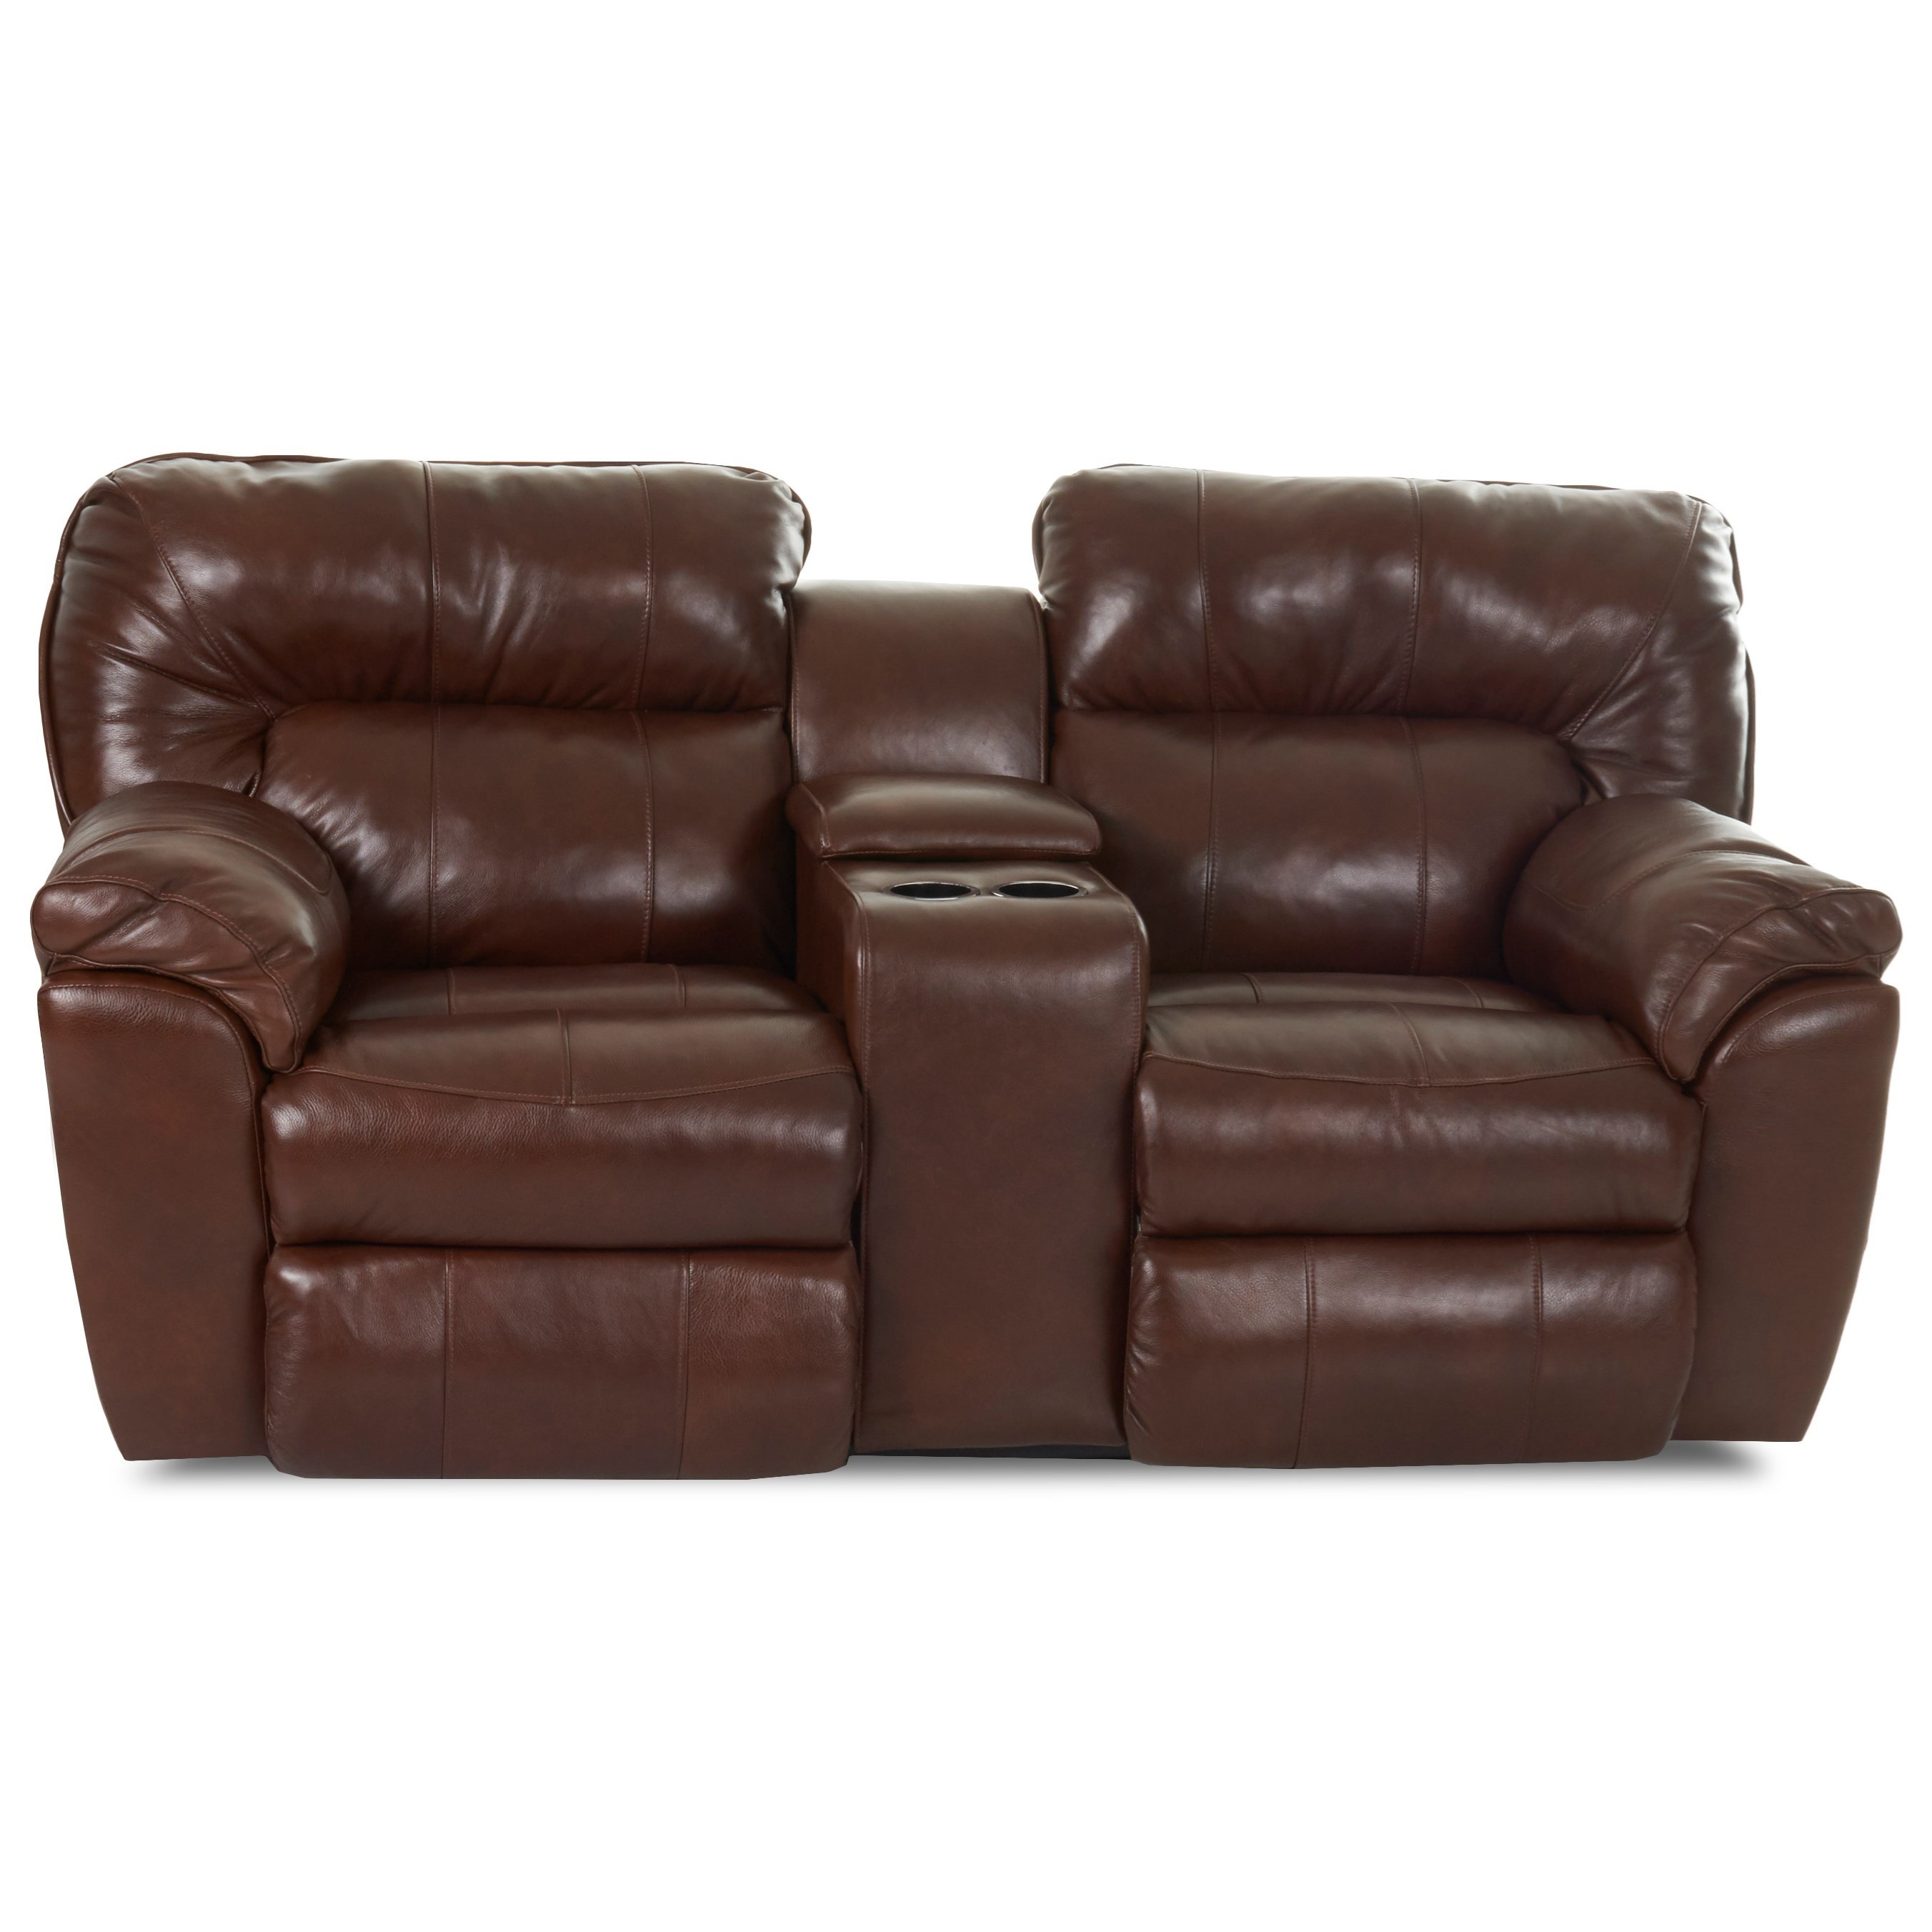 Casual Power Reclining Love Seat with Pillow Top Arms and Storage Console